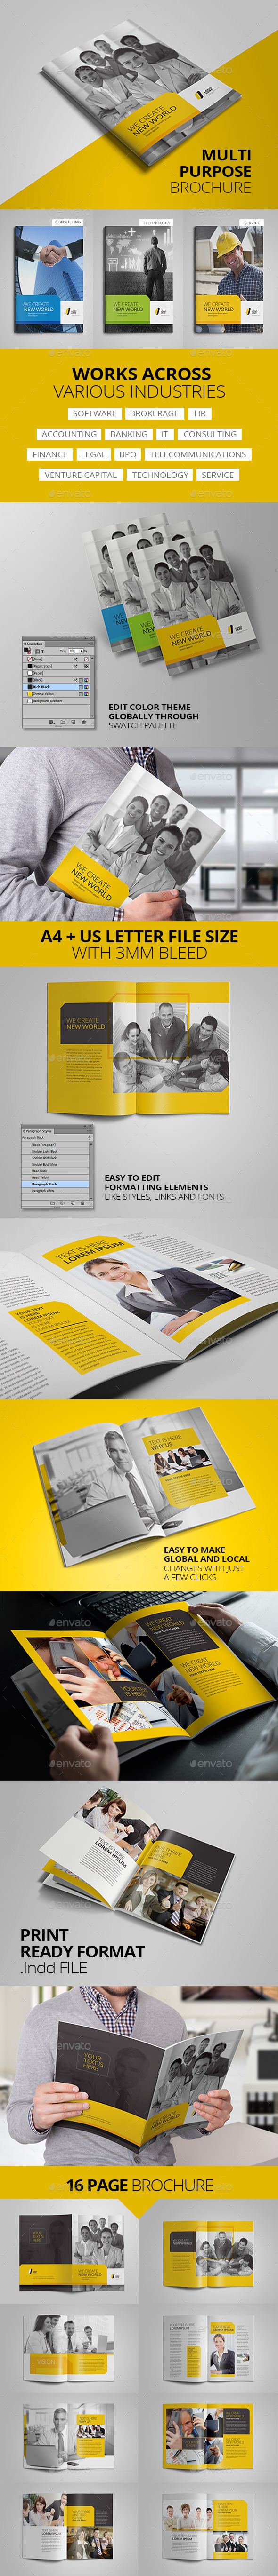 GraphicRiver Multipurpose Corporate Business Brochure 16 pages 11509733